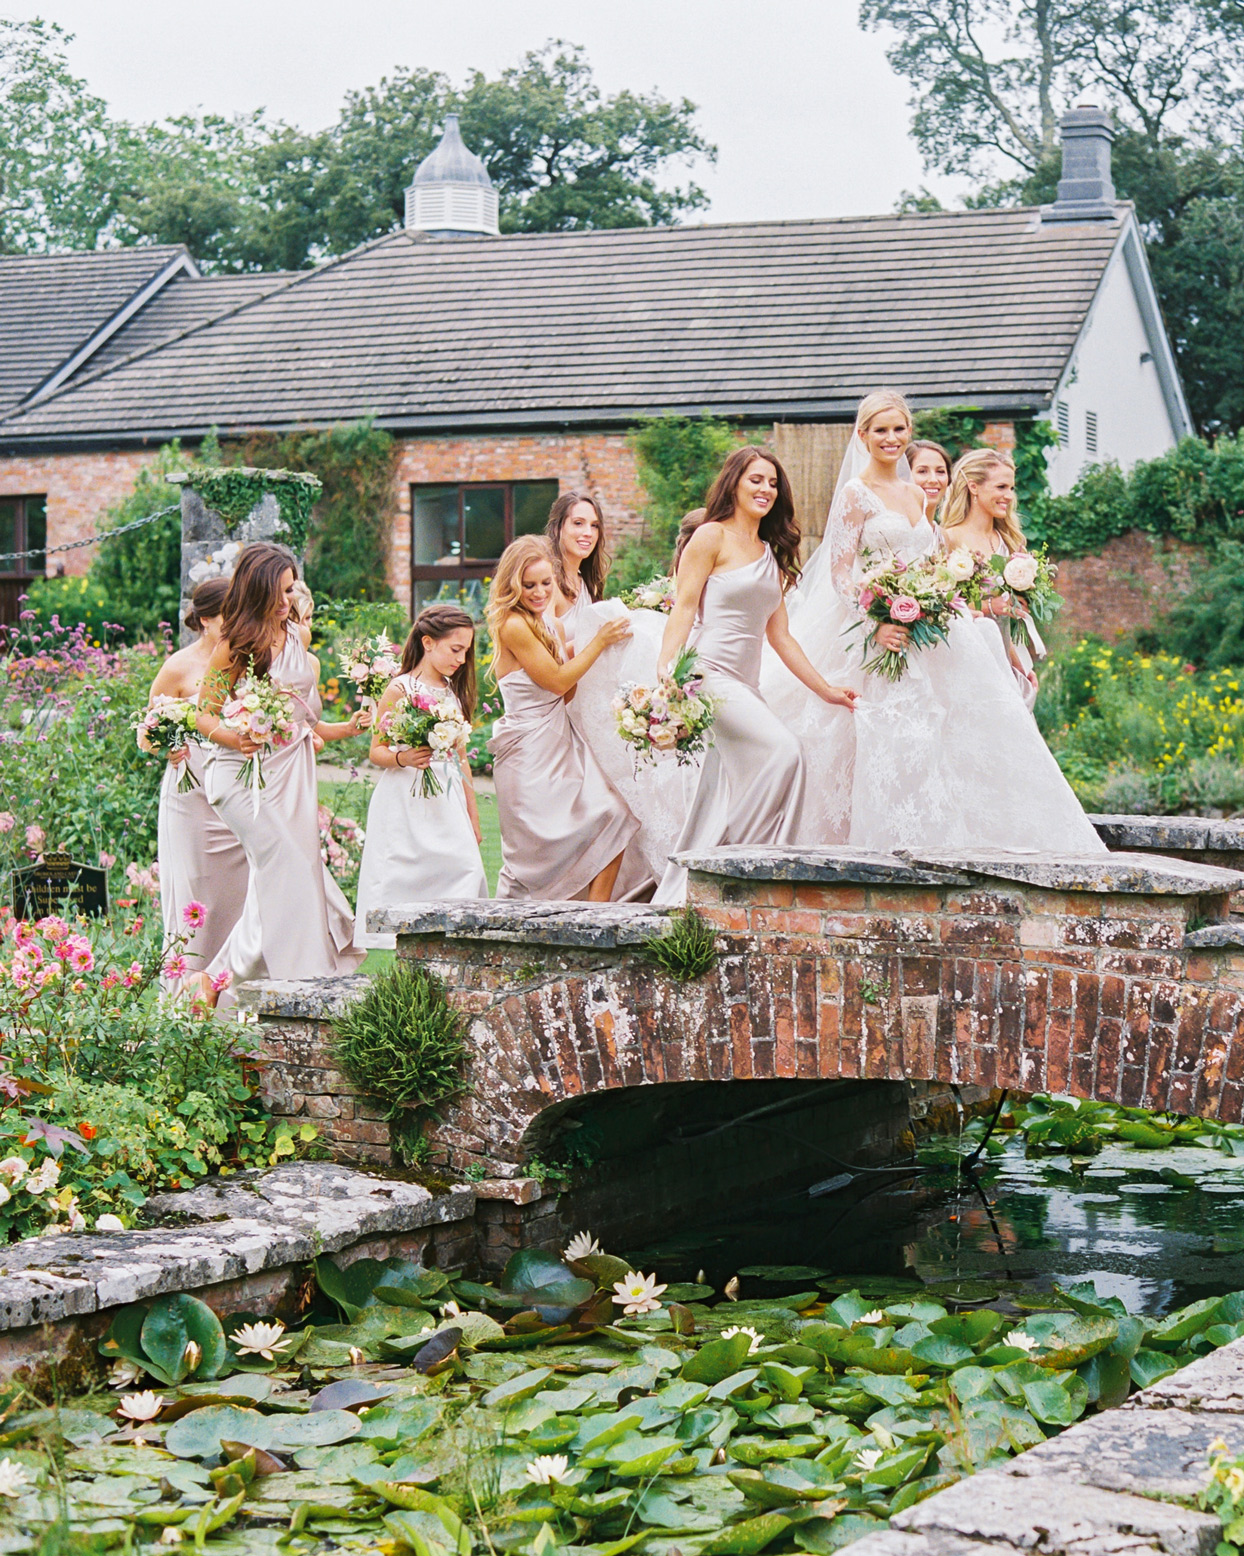 bride and bridesmaids waking over brick bridge over lily pond